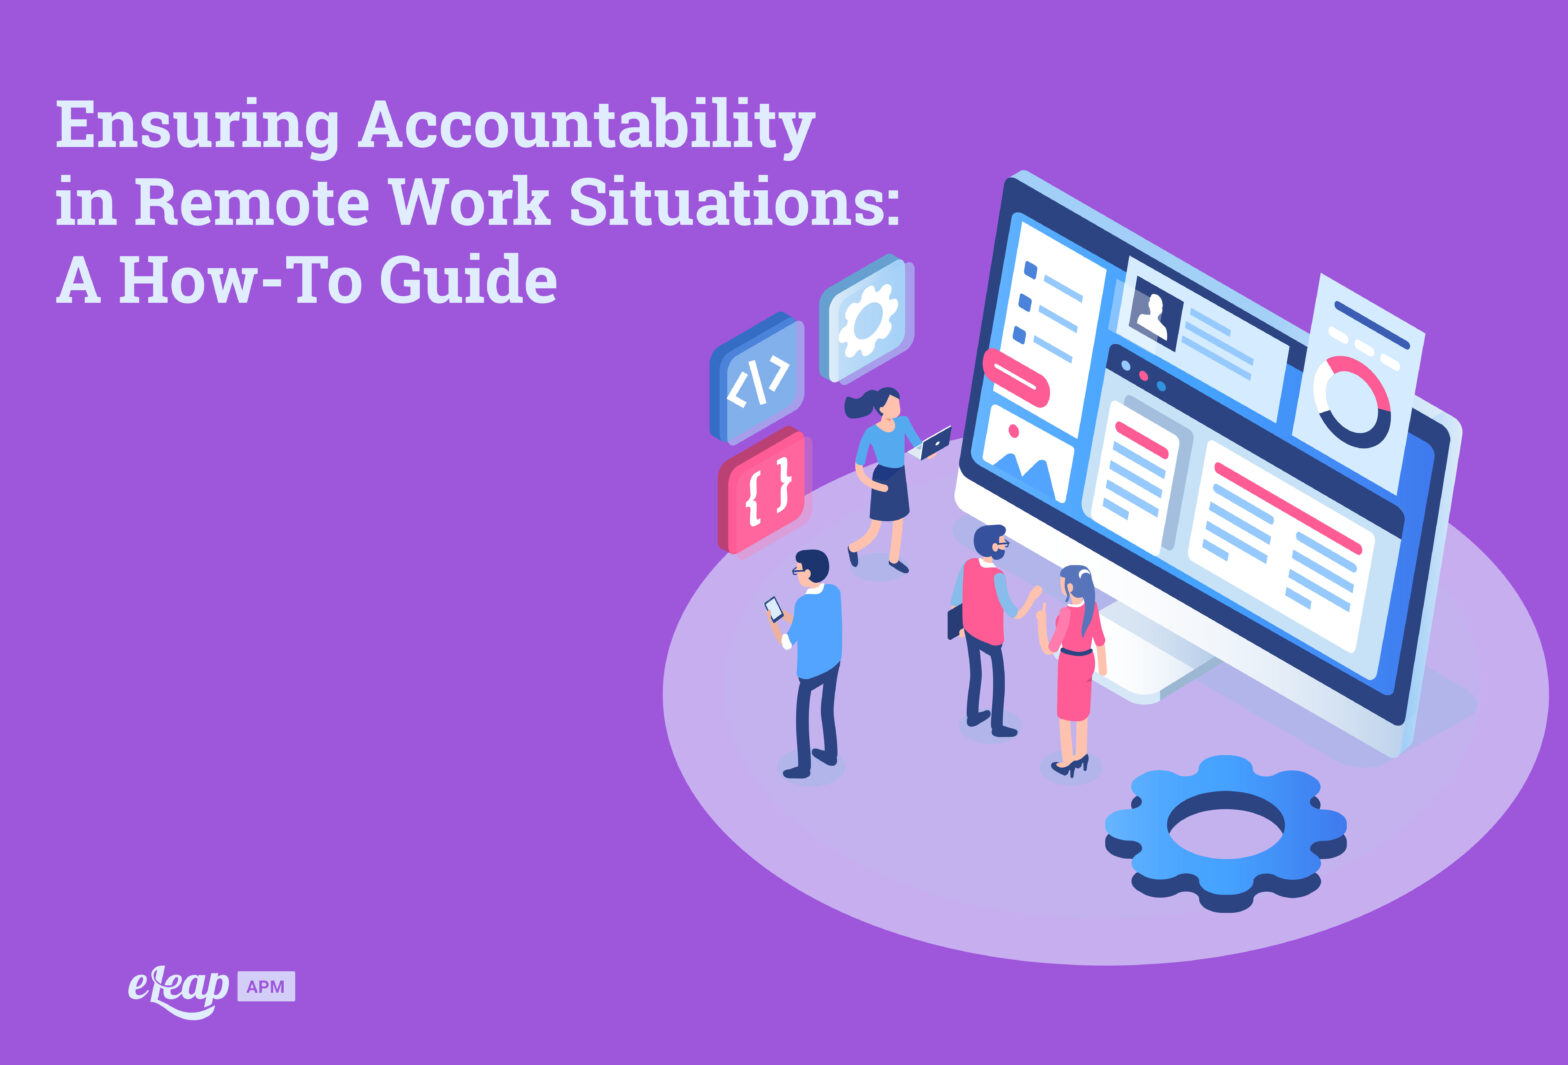 Ensuring Accountability in Remote Work Situations: A How-To Guide